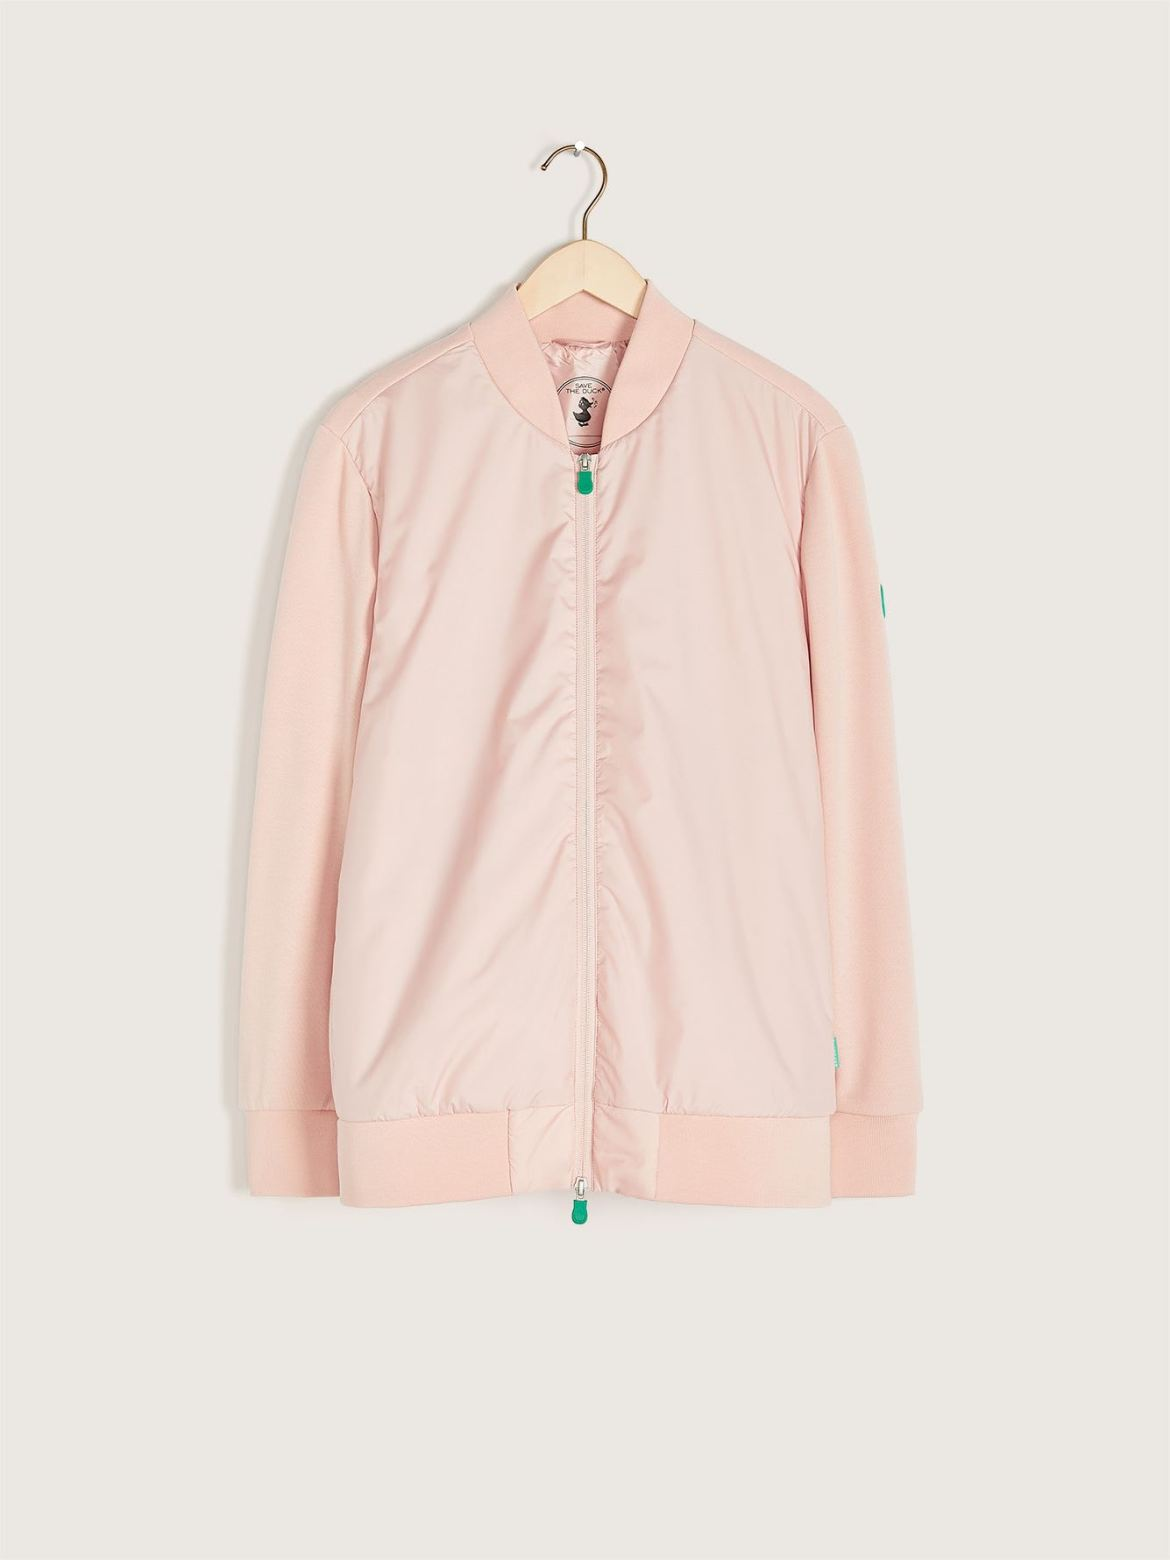 Lightweight Bomber Jacket - Save The Duck